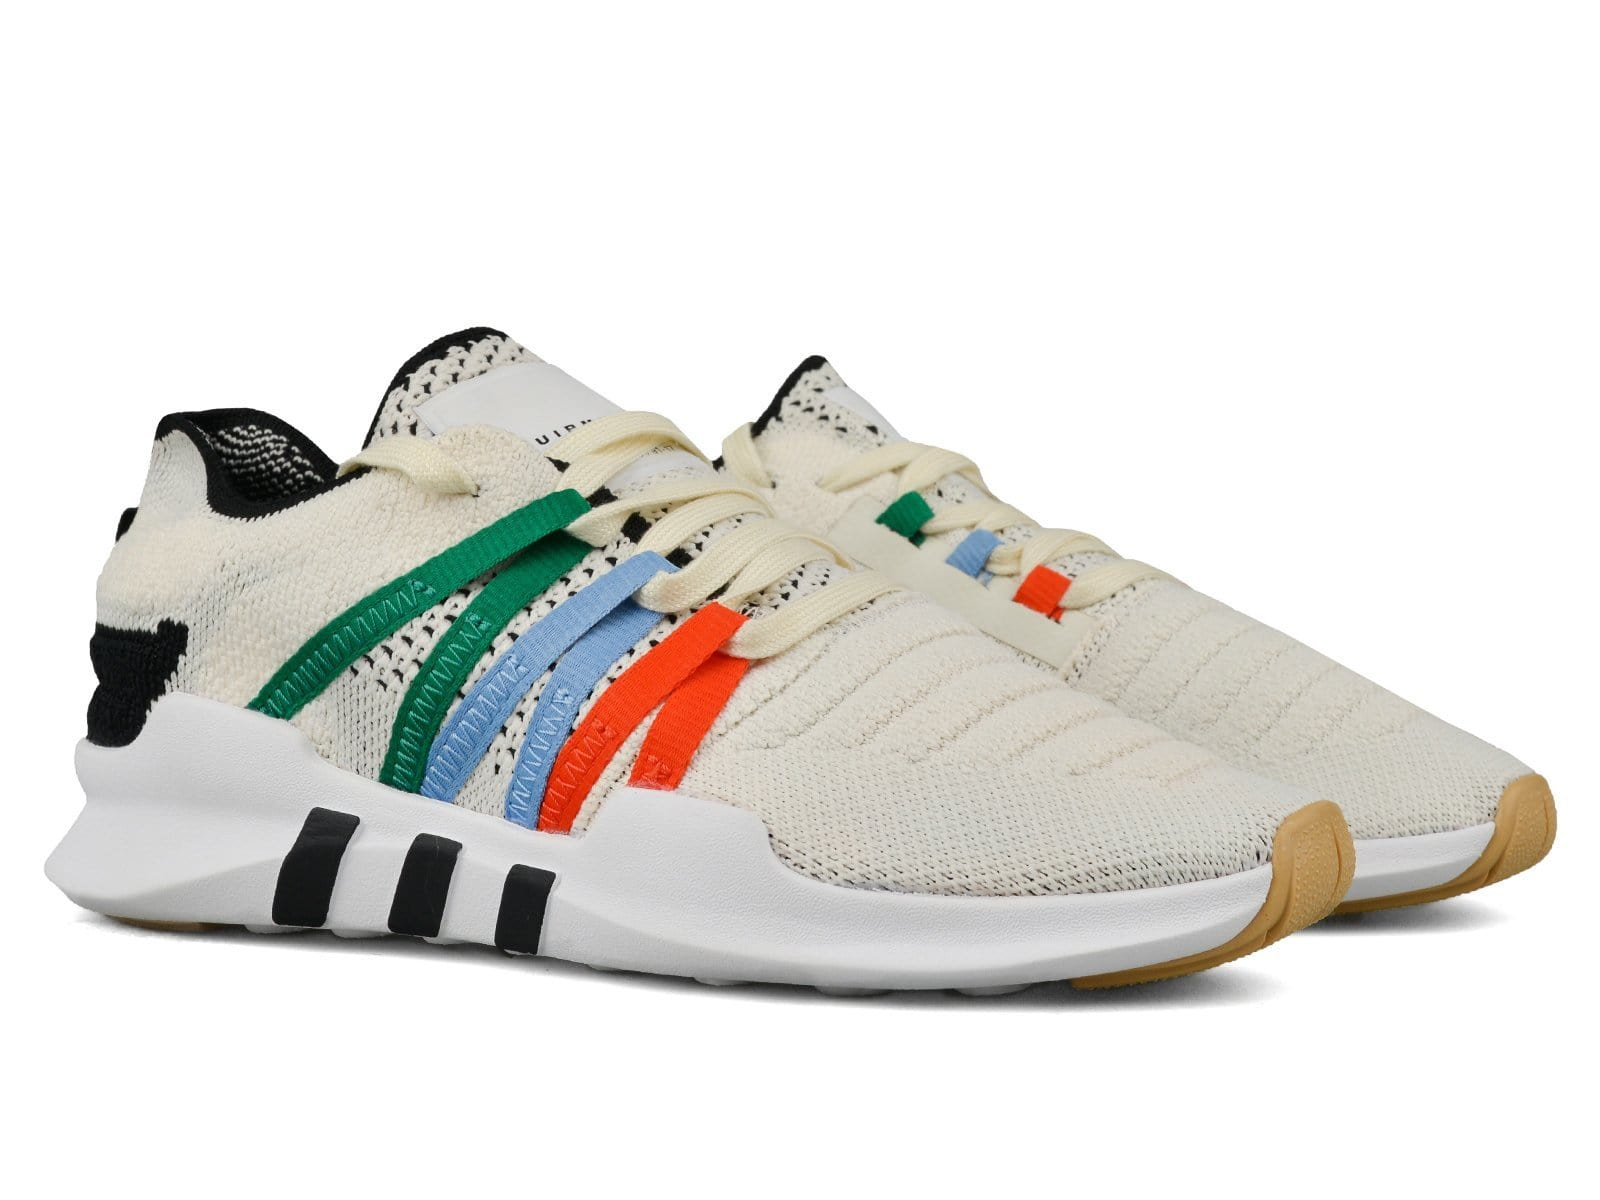 premium selection 6427d 935cb Adidas Womens EQT RACING ADV PK WhiteOrangeBlack